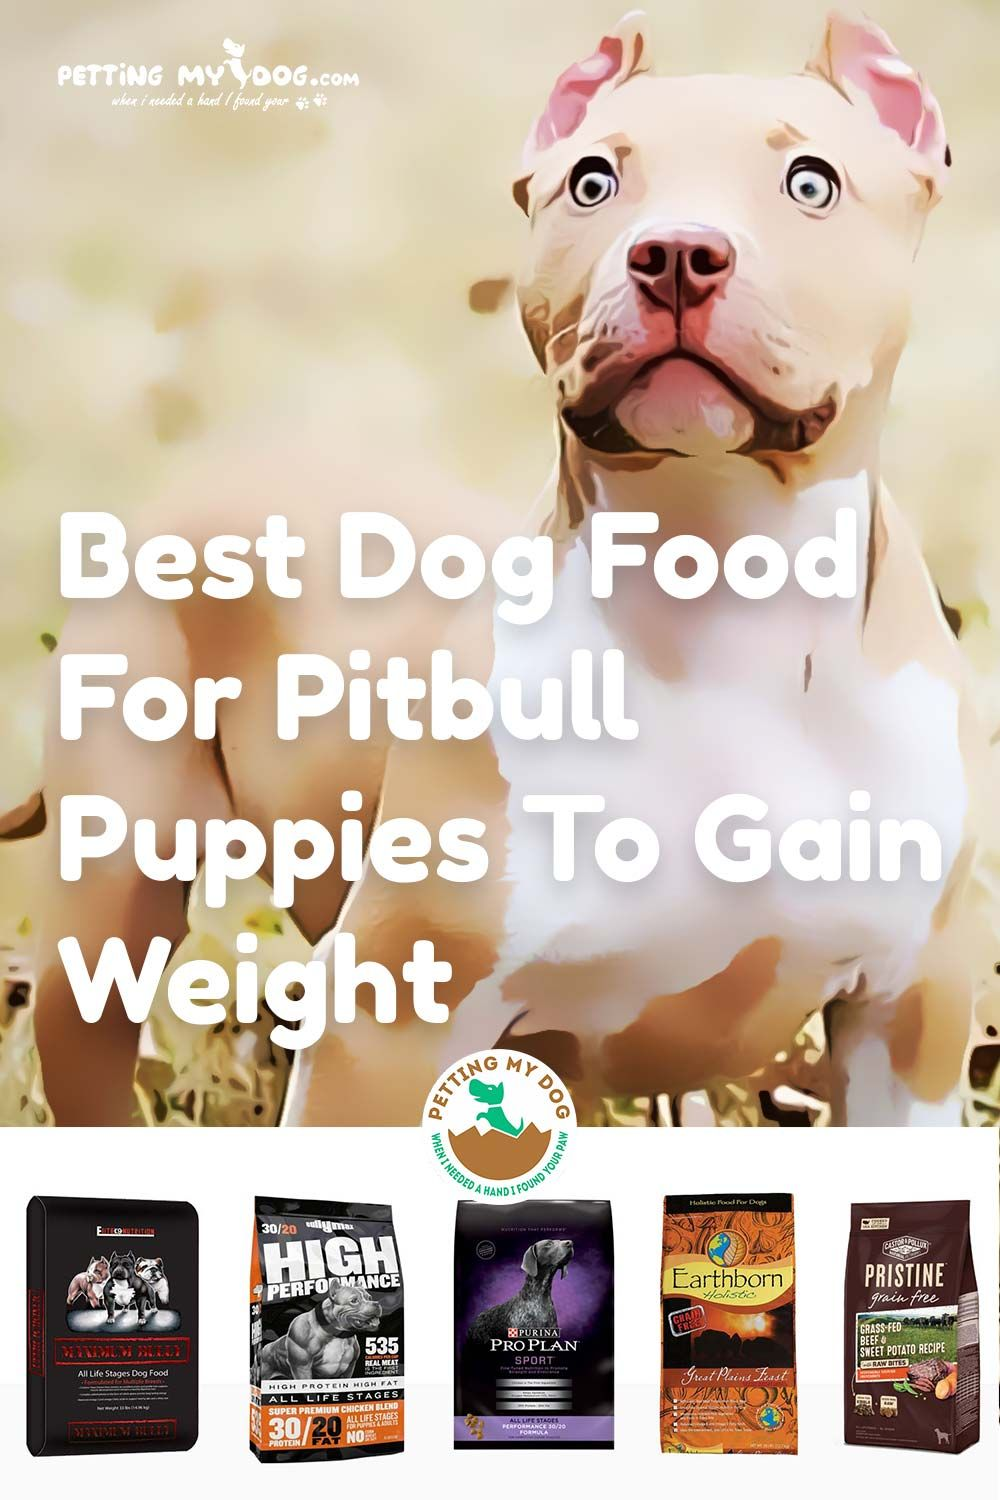 Best Dog Food For Pitbull Puppies To Gain Weight Pitbulls Pitbull Puppies Best Dog Food